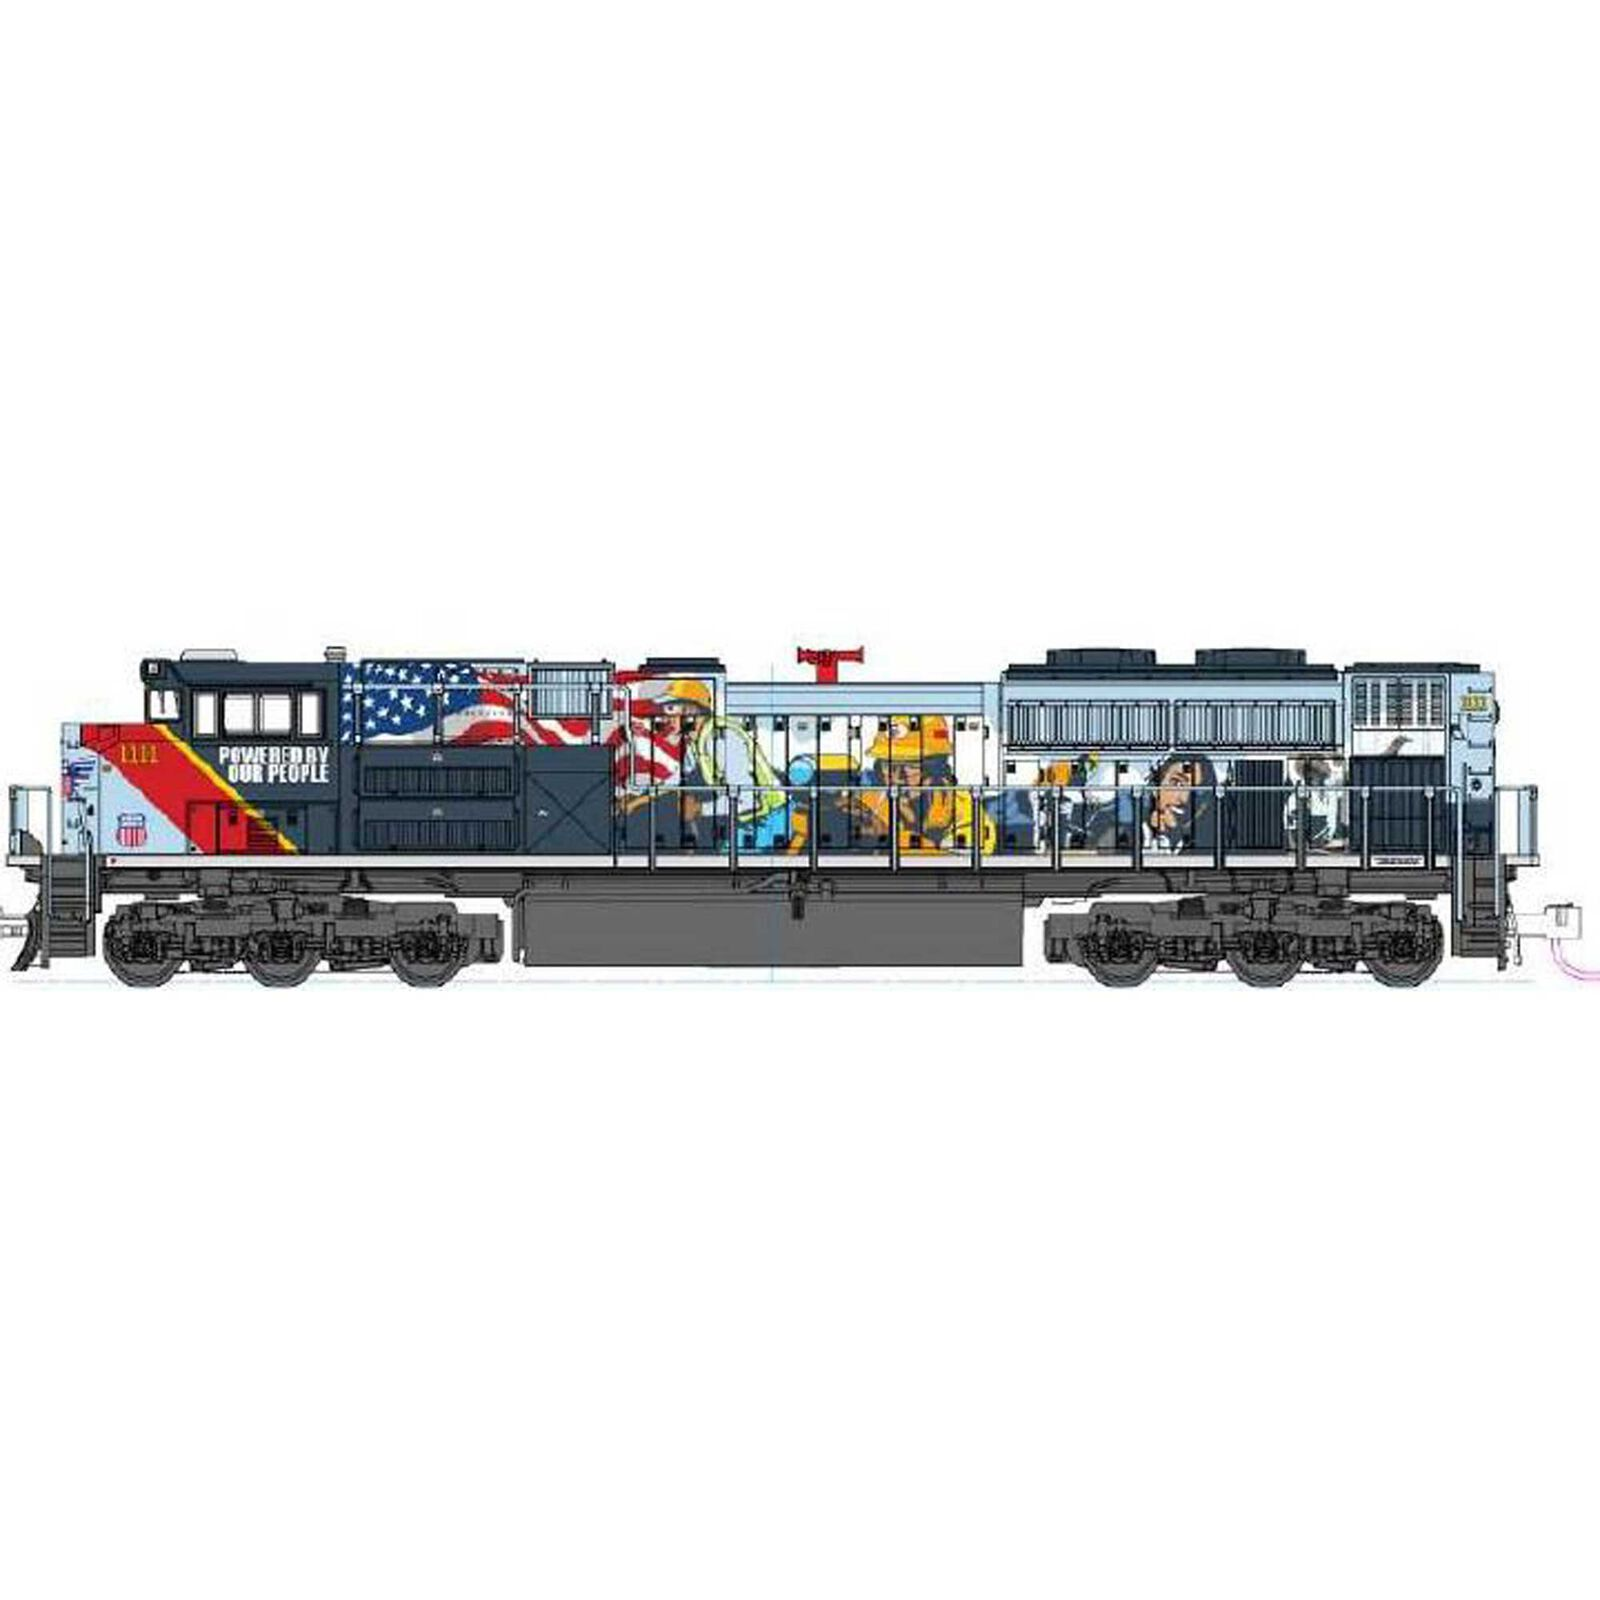 """N EMD SD70ACe Union Pacific #1111 """"PBOP"""" with DCC"""